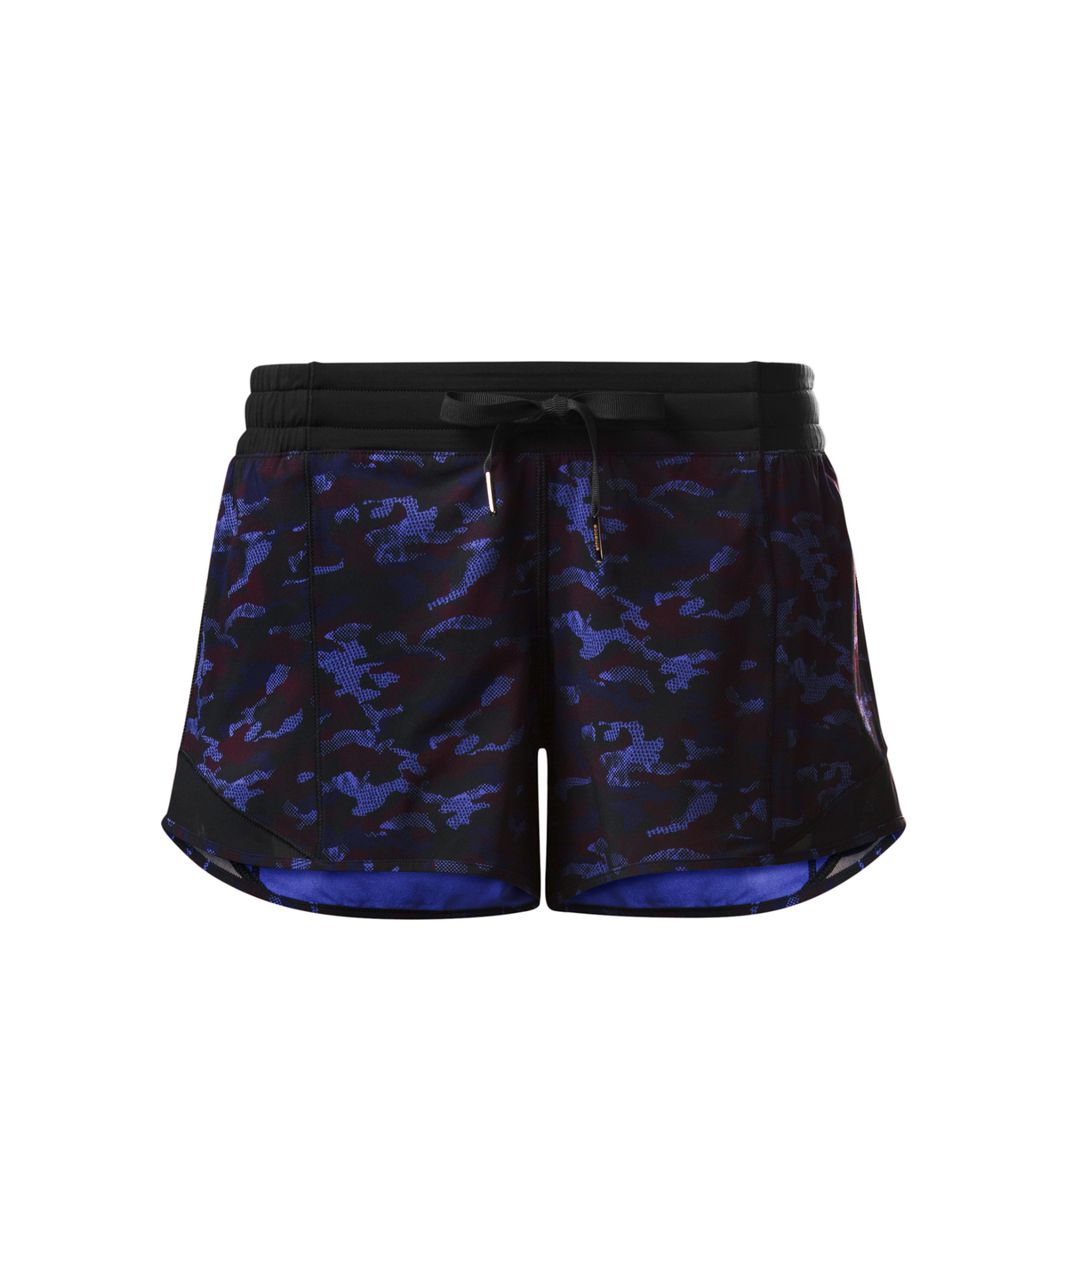 Lululemon Hotty Hot Short (Long) - Mini Hounds Camo Emperor Blue Black / Black